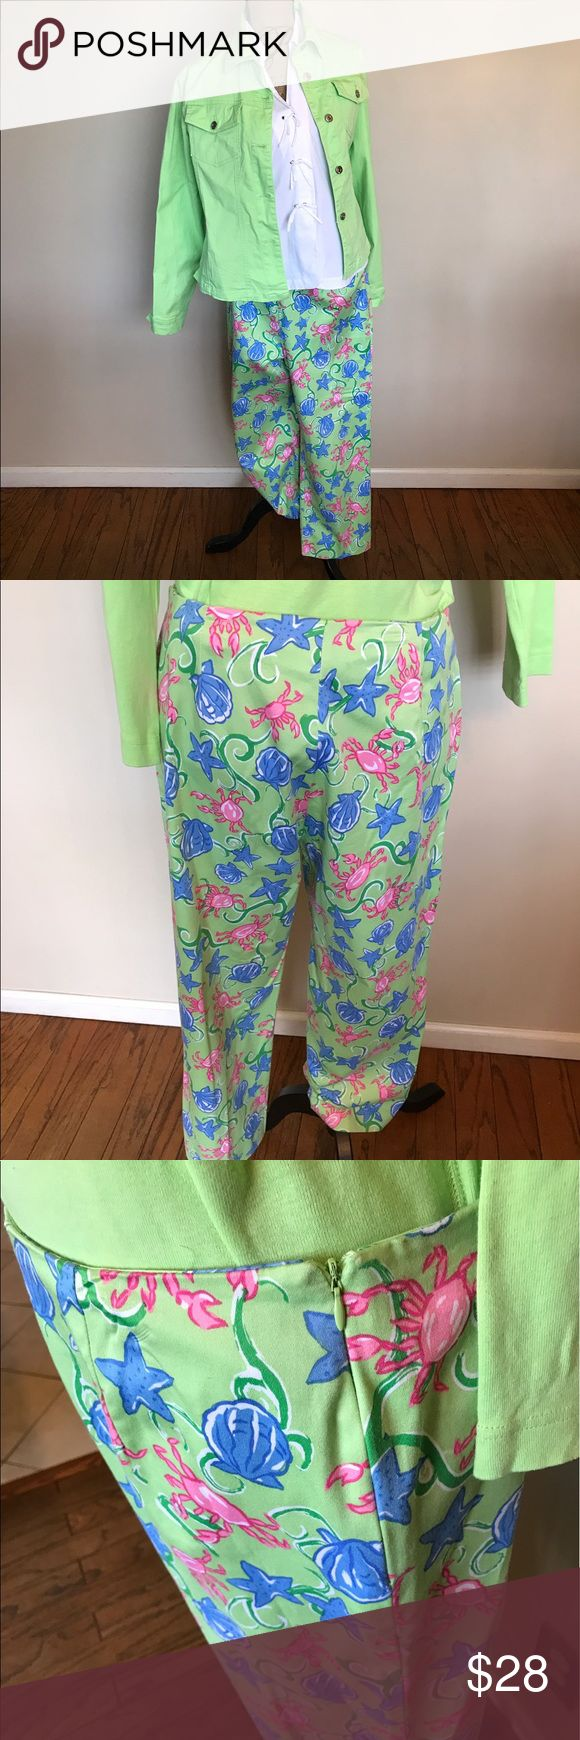 "Bamboo Traders lime pant w/blue/pink shell print Worn twice🎉Side slit @ bottom🎉24"" inseam🎉Side zip🎉🎉 Please ask for additional pictures, measurements, or ask questions before purchase. 🎉 No trades or other apps 🎉 Ships next business day, unless noted in my closet  🎉 Bundle for discount Bamboo Traders Pants Ankle & Cropped"